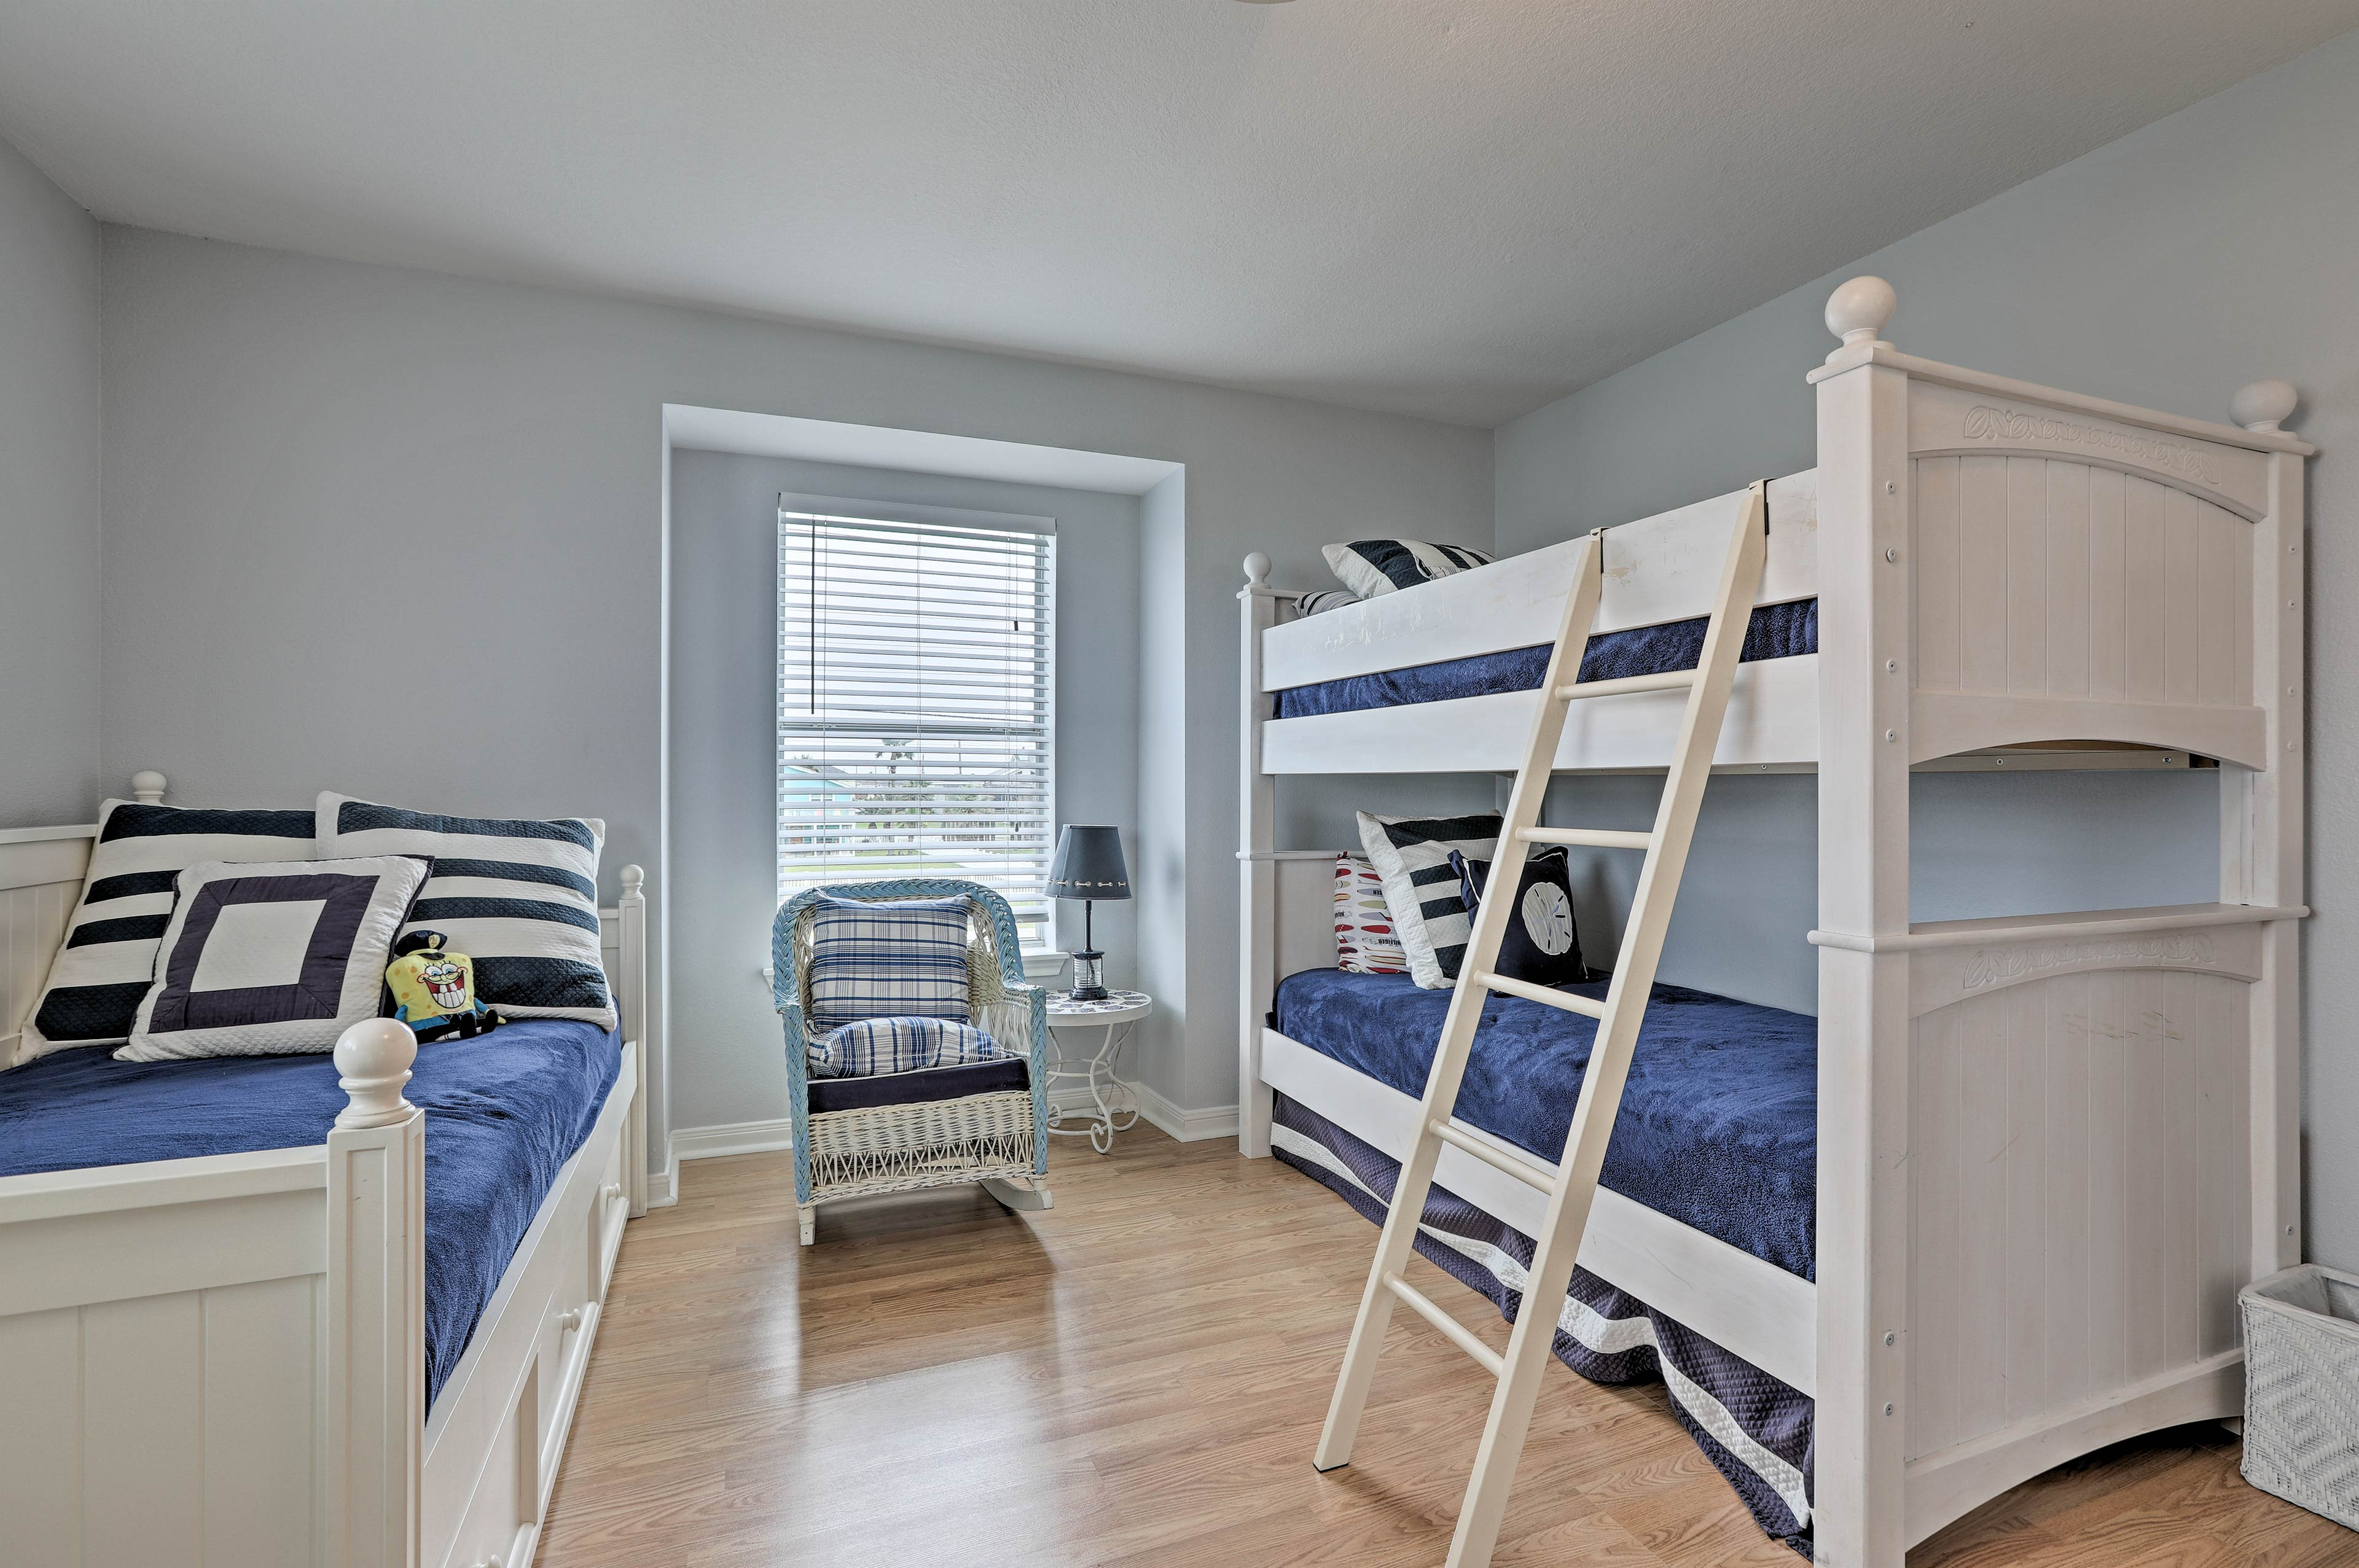 It features 2 twin beds with twin trundle beds, along with a twin bunk bed.